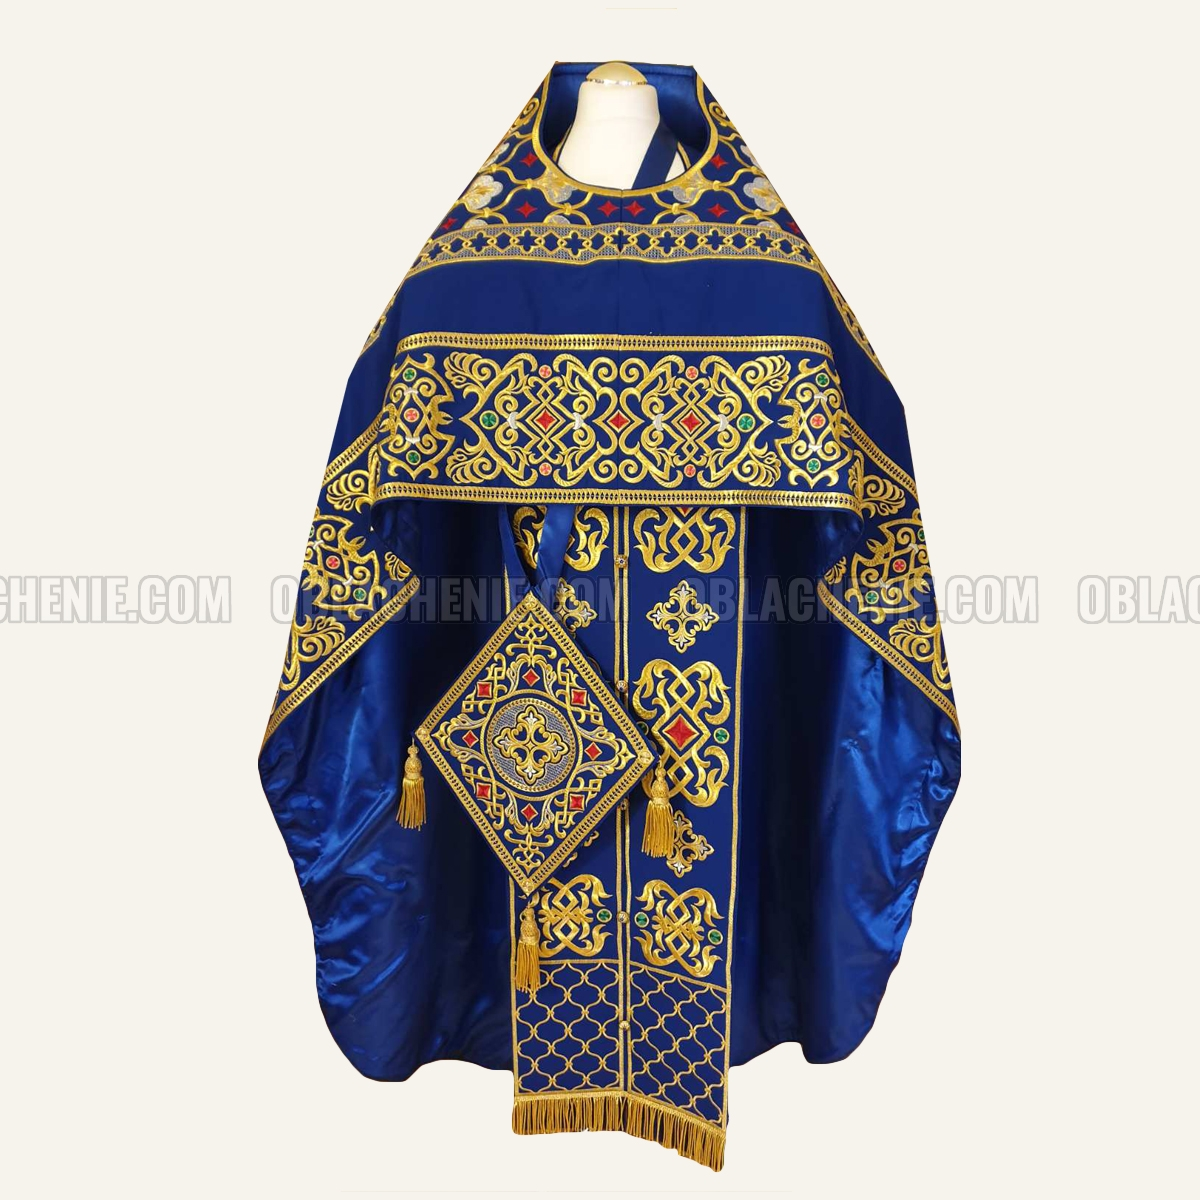 EMBROIDERED PRIEST'S VESTMENTS 10984